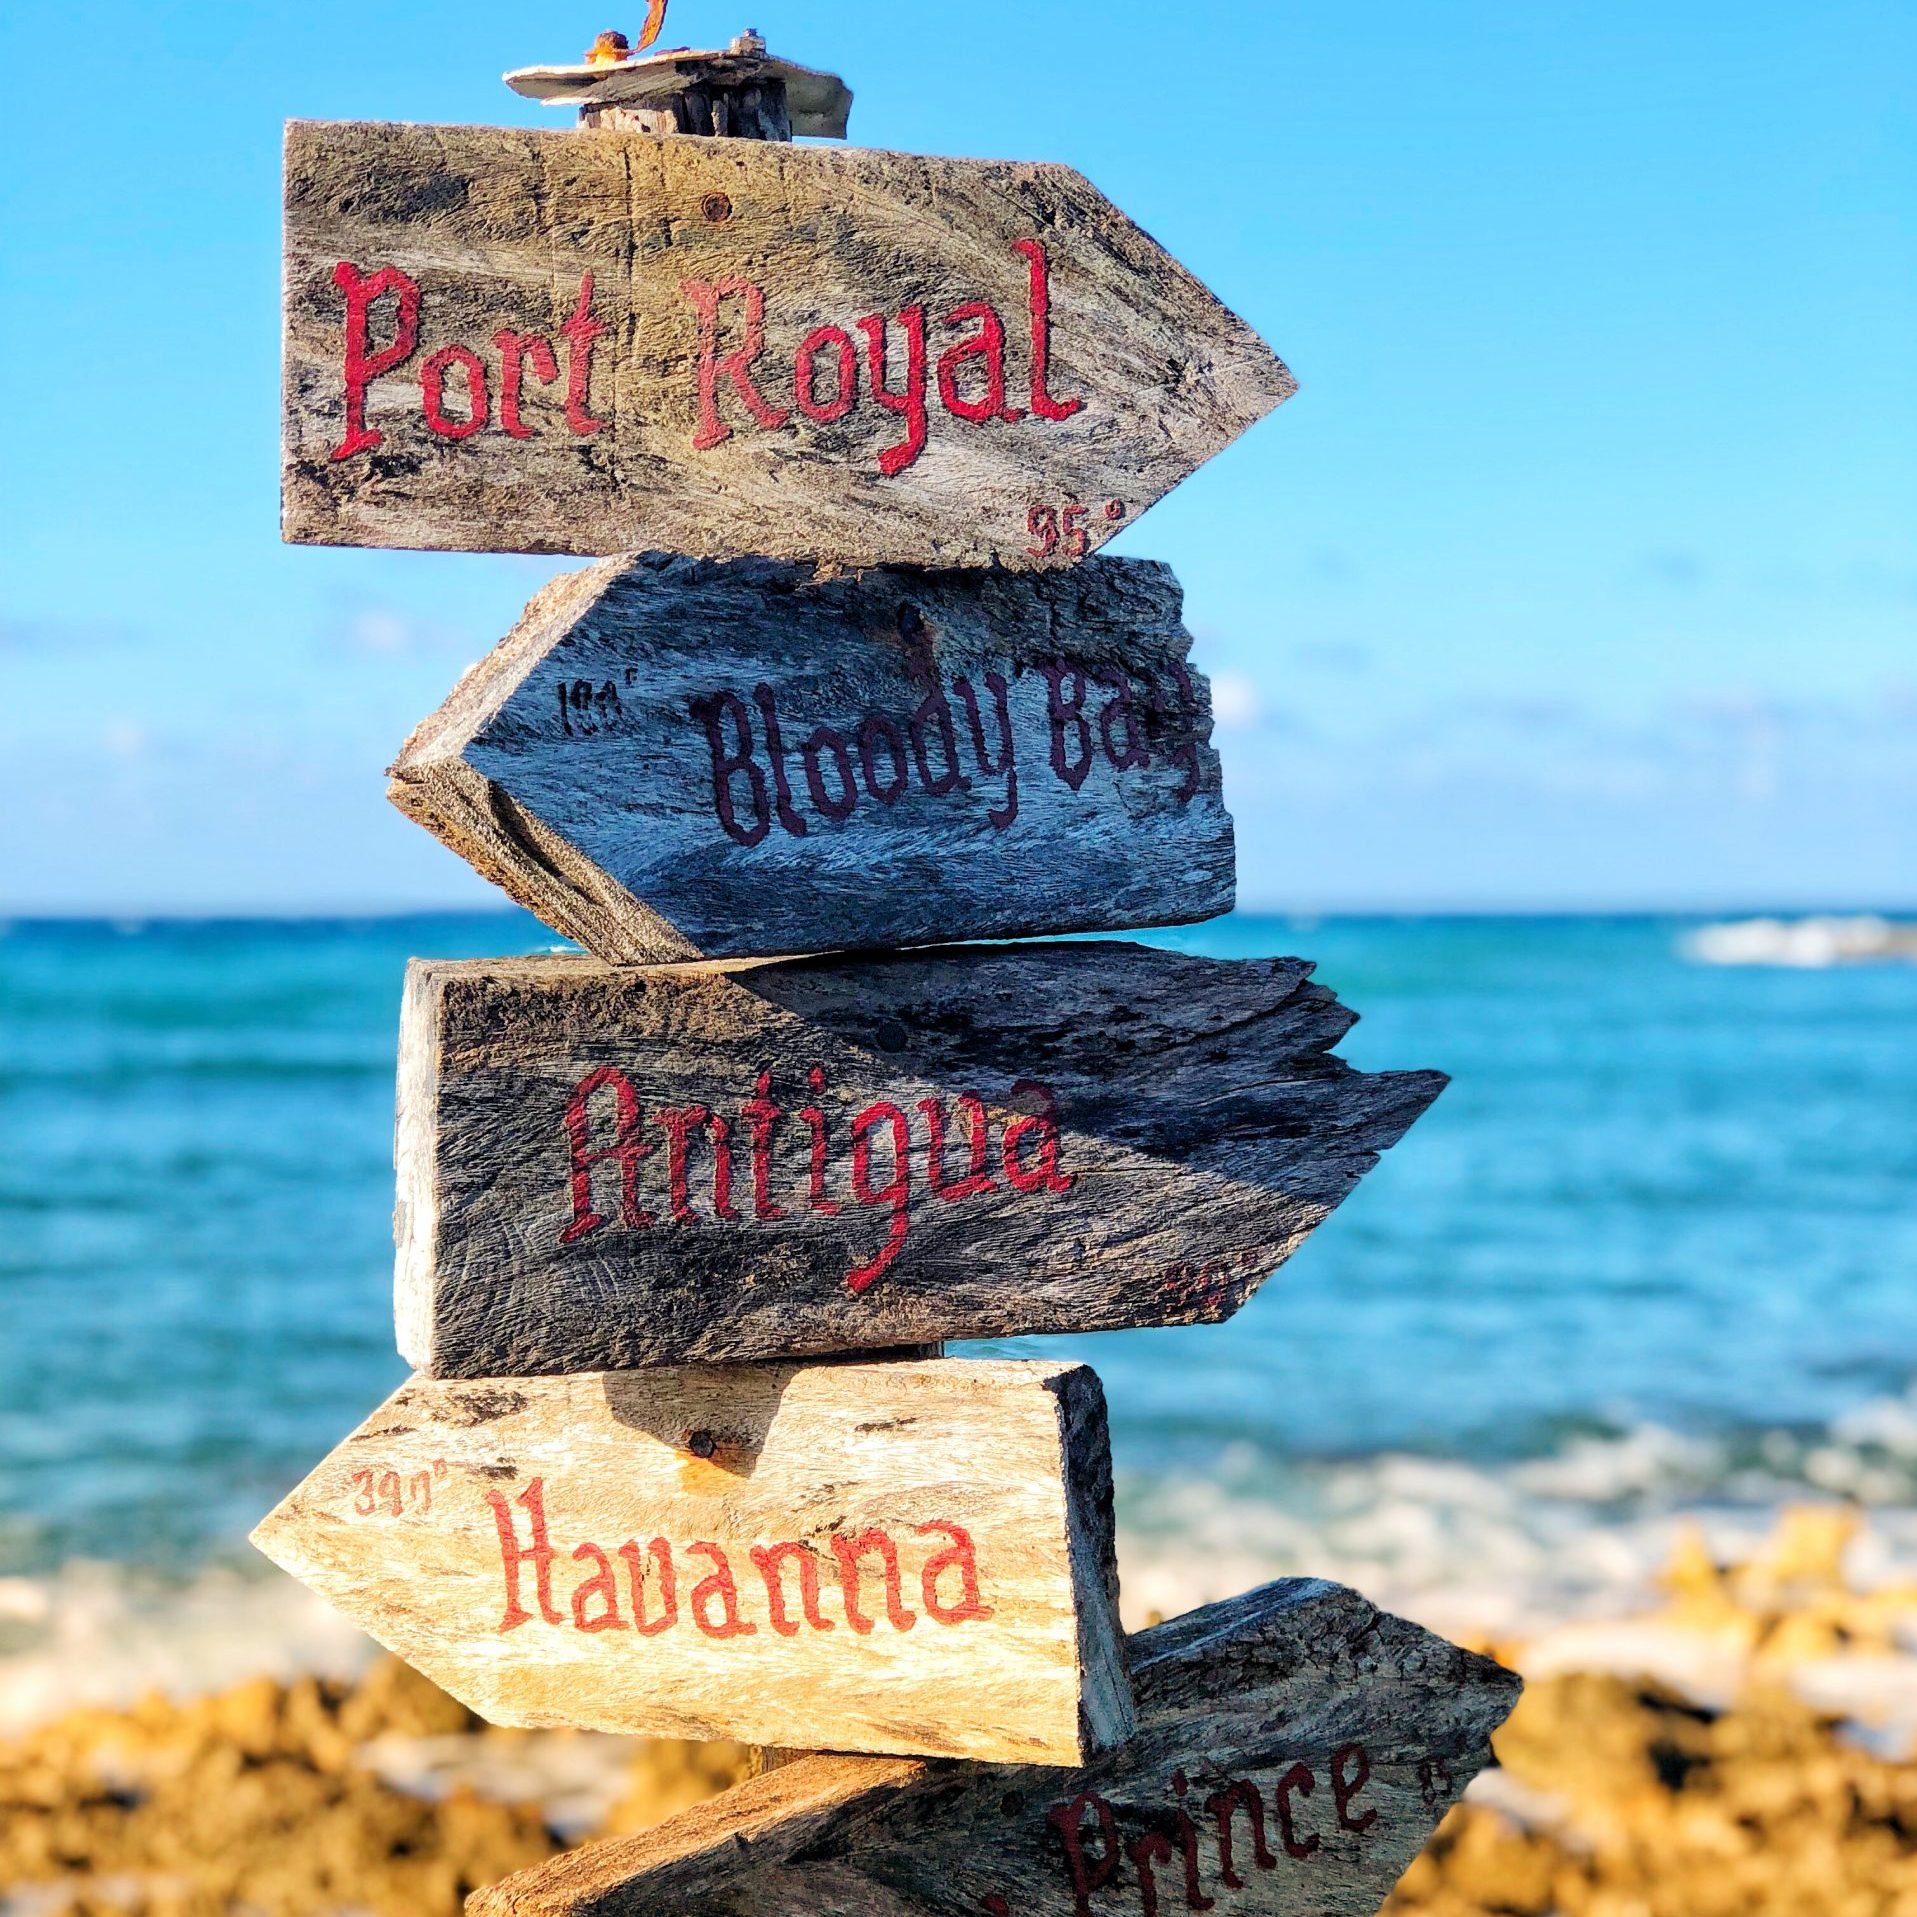 Negril post on beach of directions of places